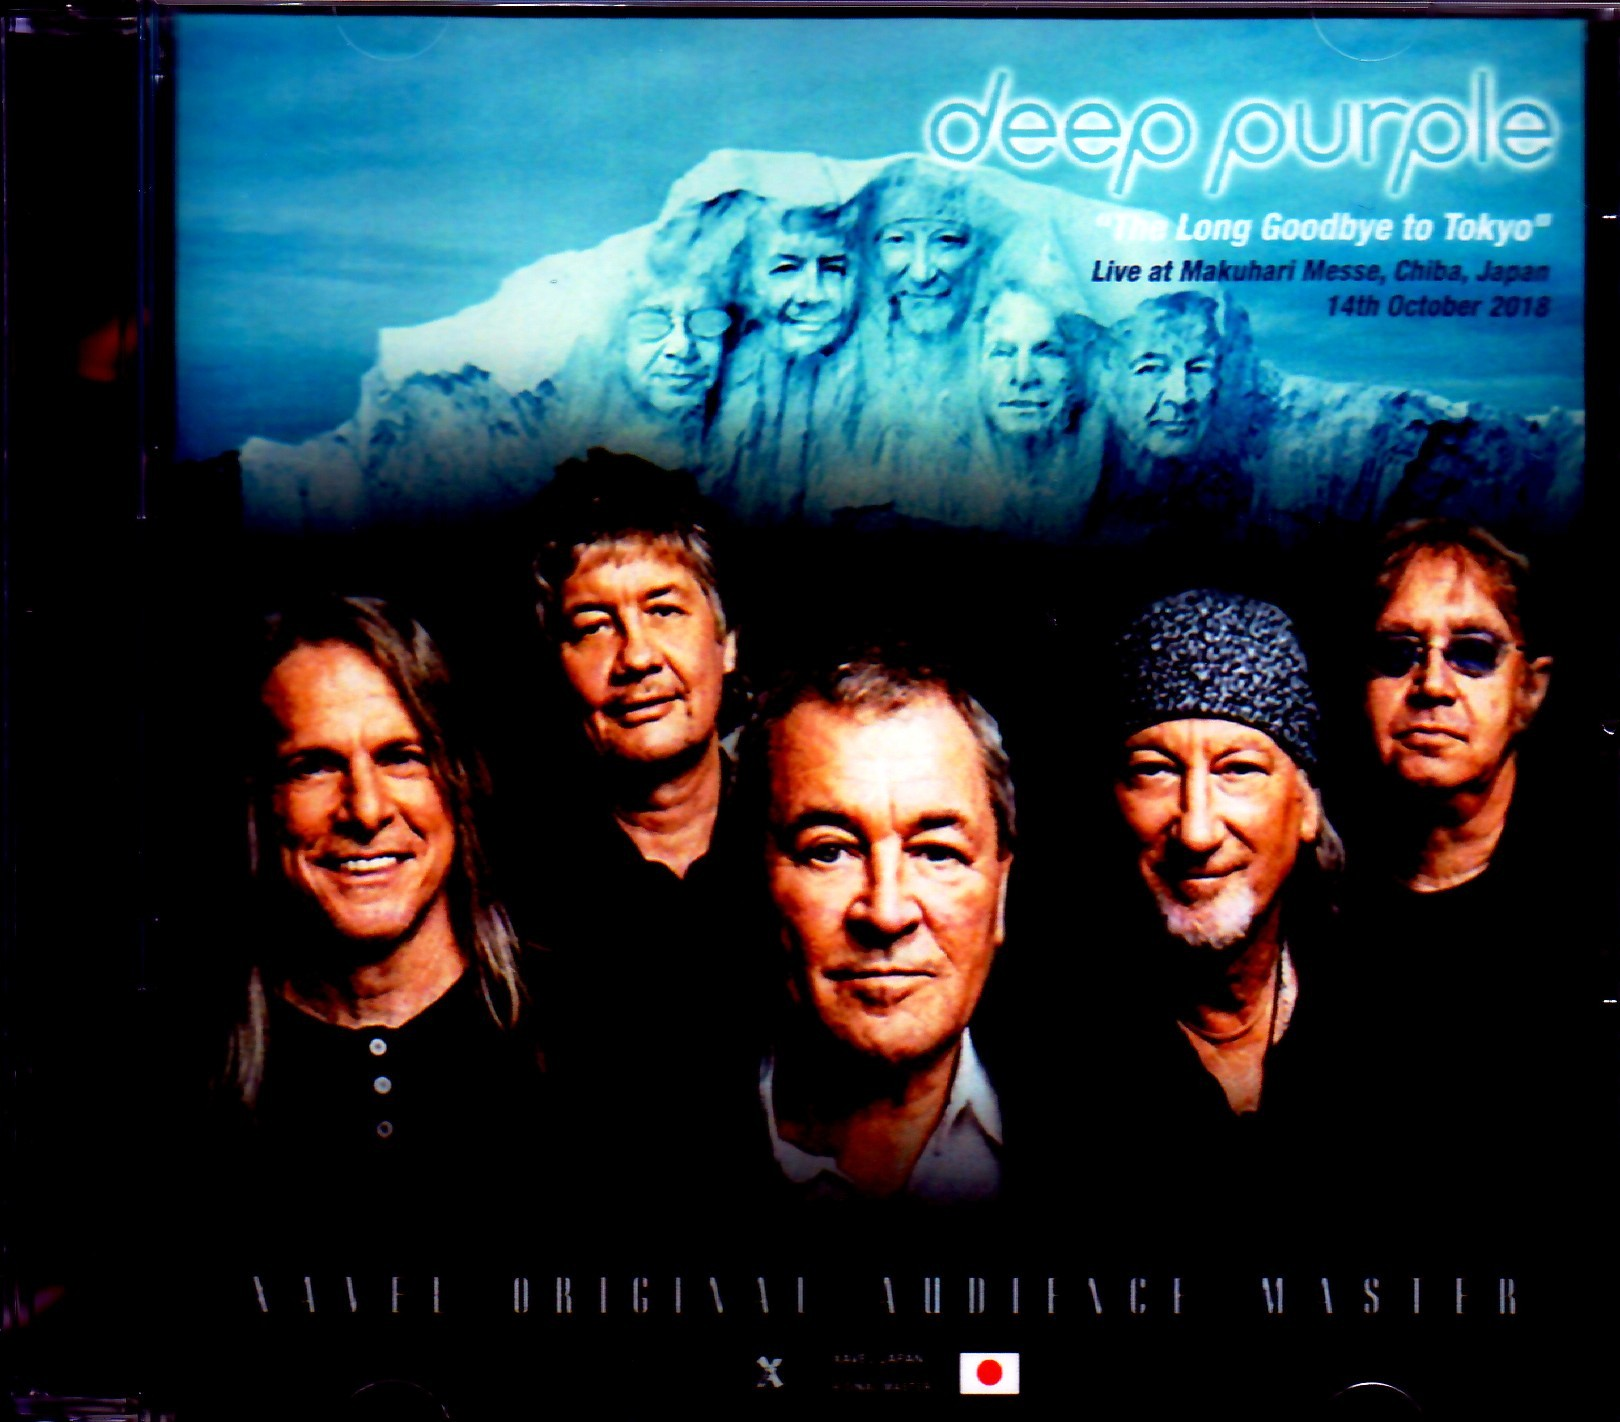 Deep Purple ディープ・パープル/Chiba,Japan 2018 Another Seat Ver.